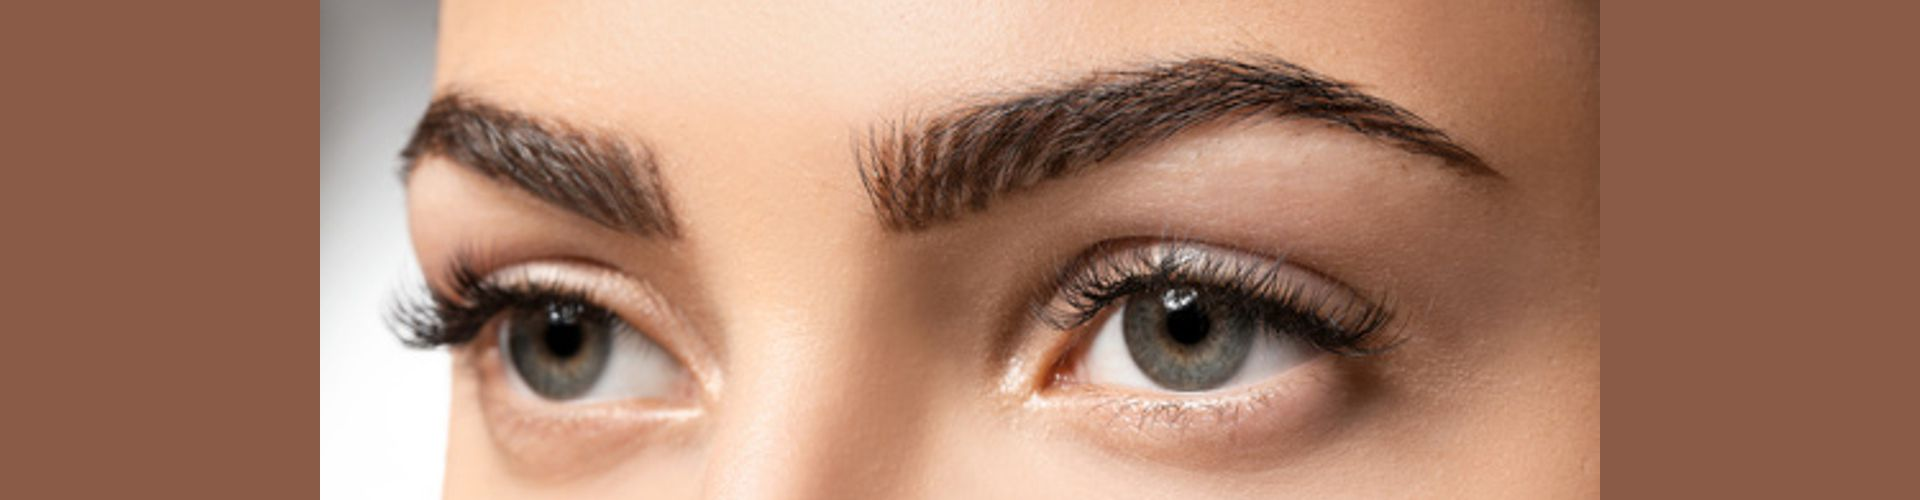 Eyebrow Tinting Eyelash Tinting Added Definition Volume And Colour